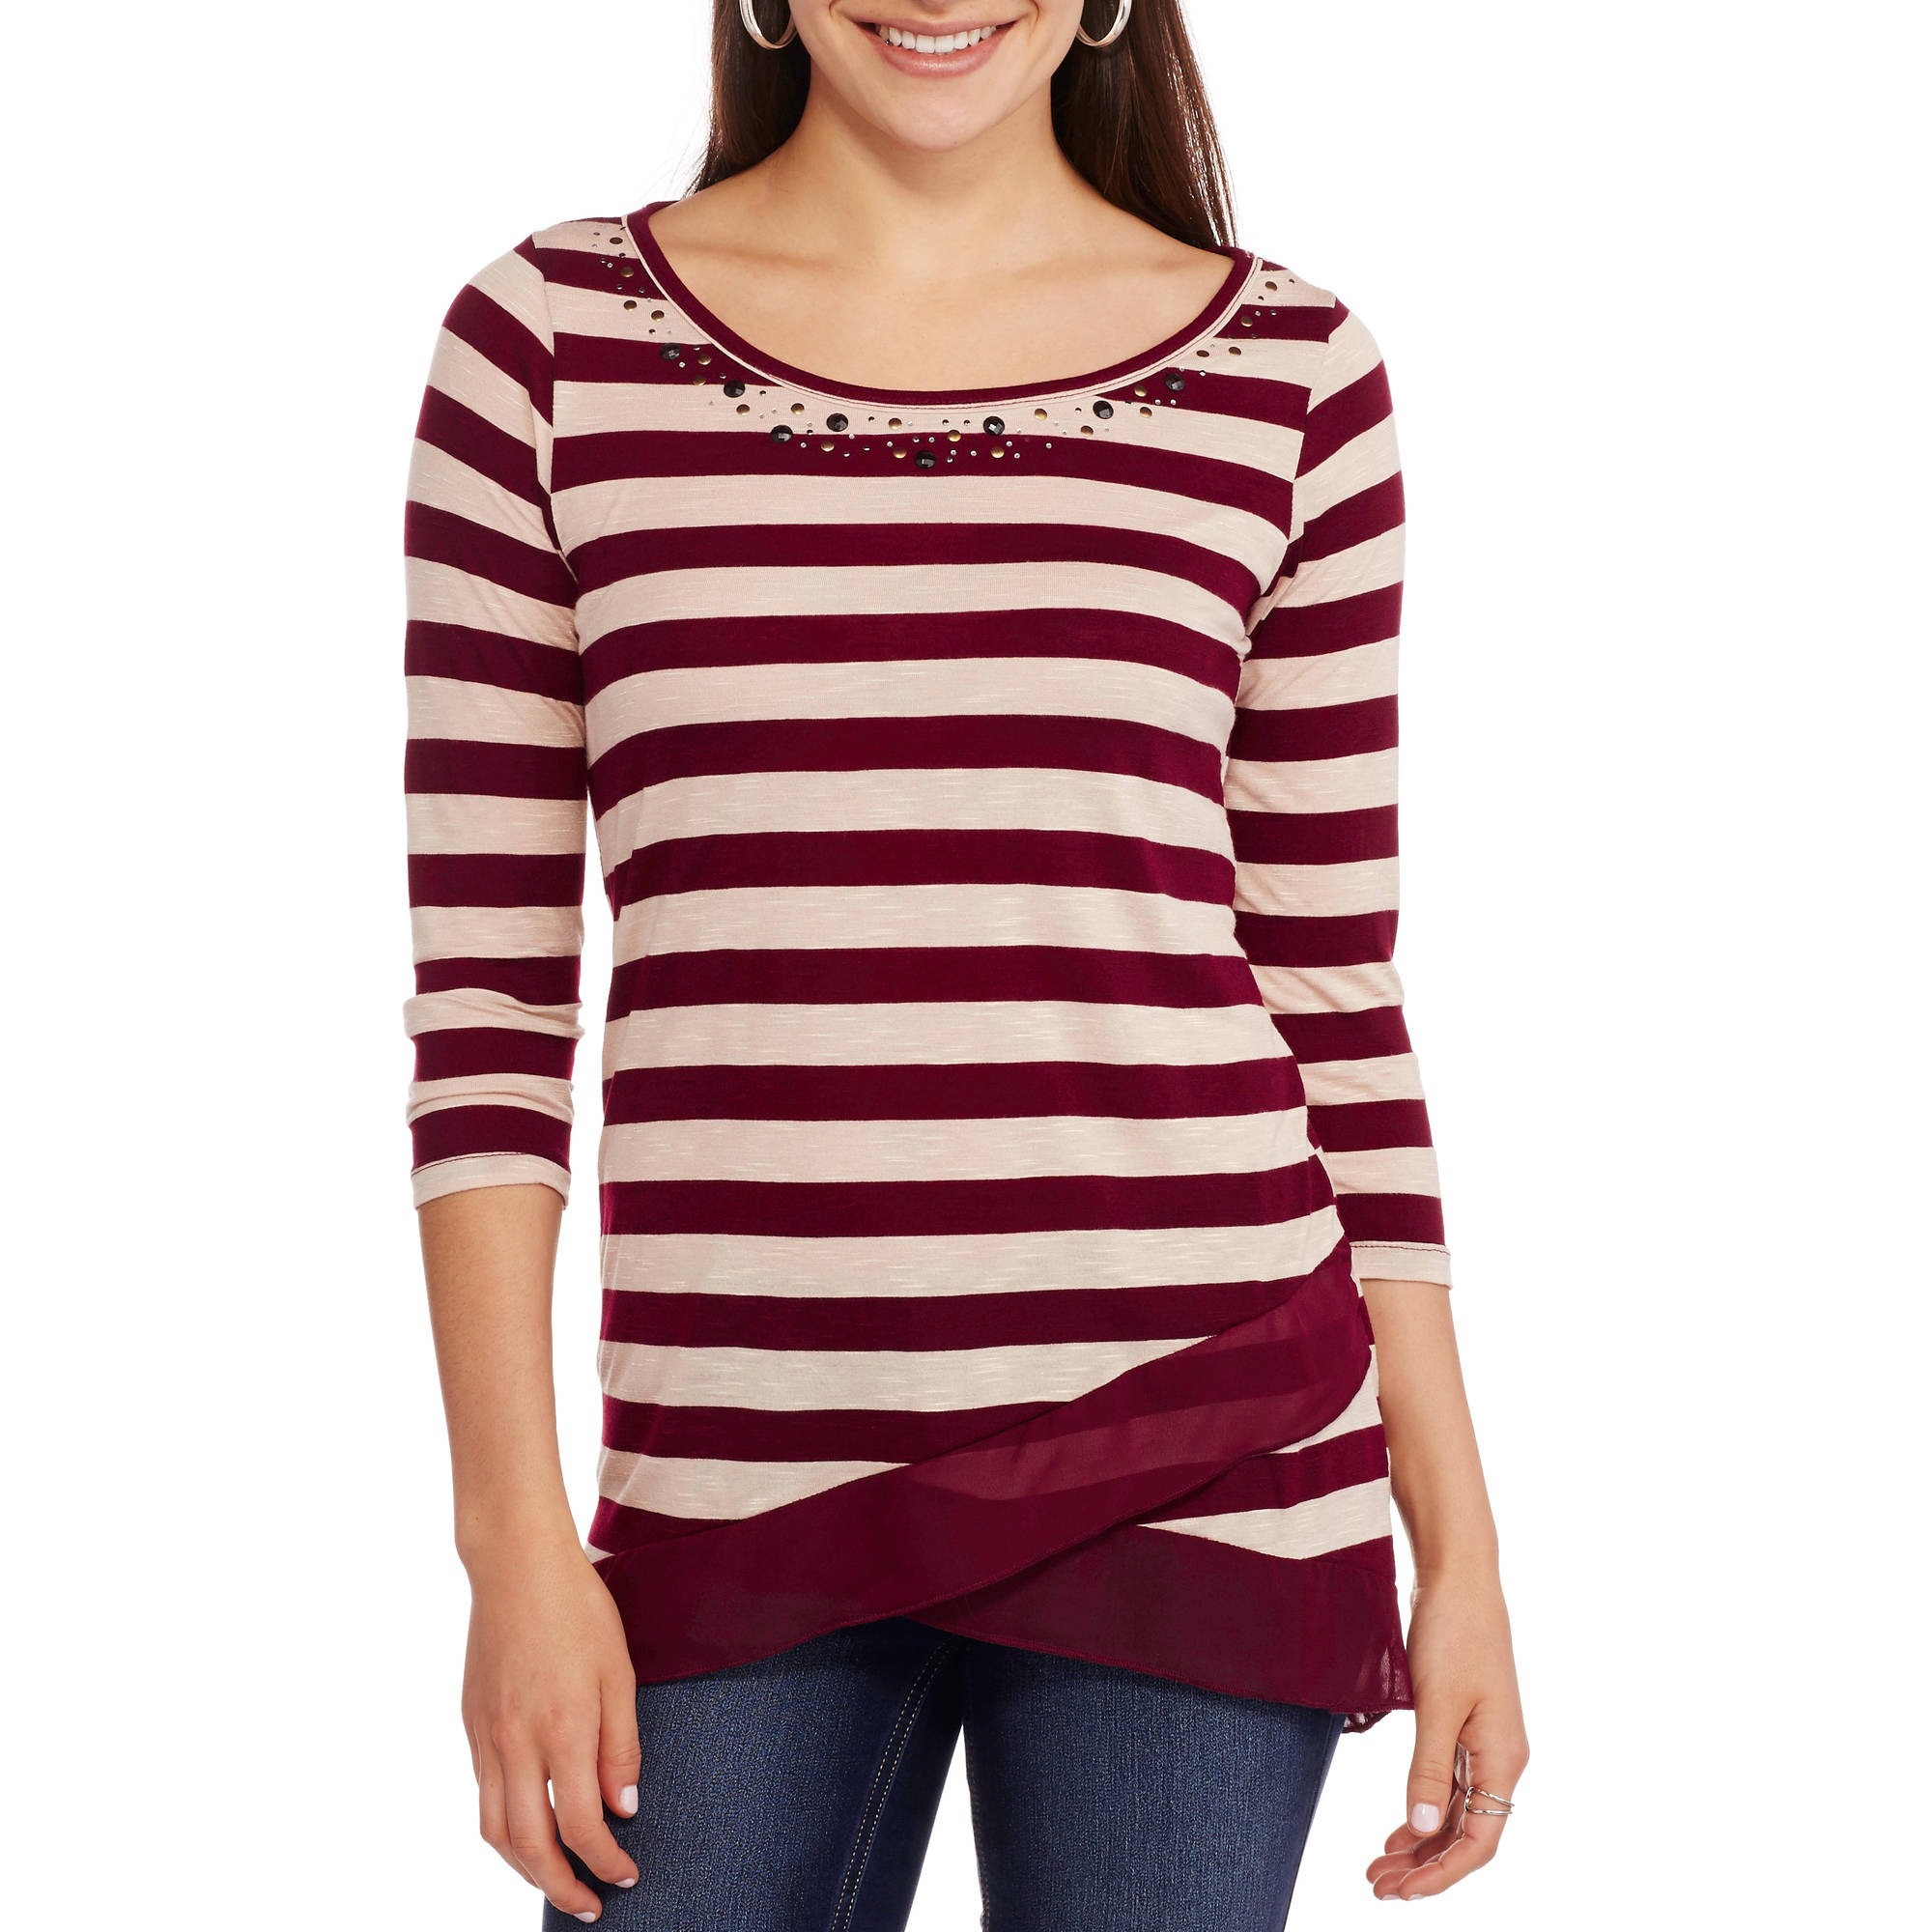 French Laundry Women's Embellished Crossover Top with Chiffon Trim